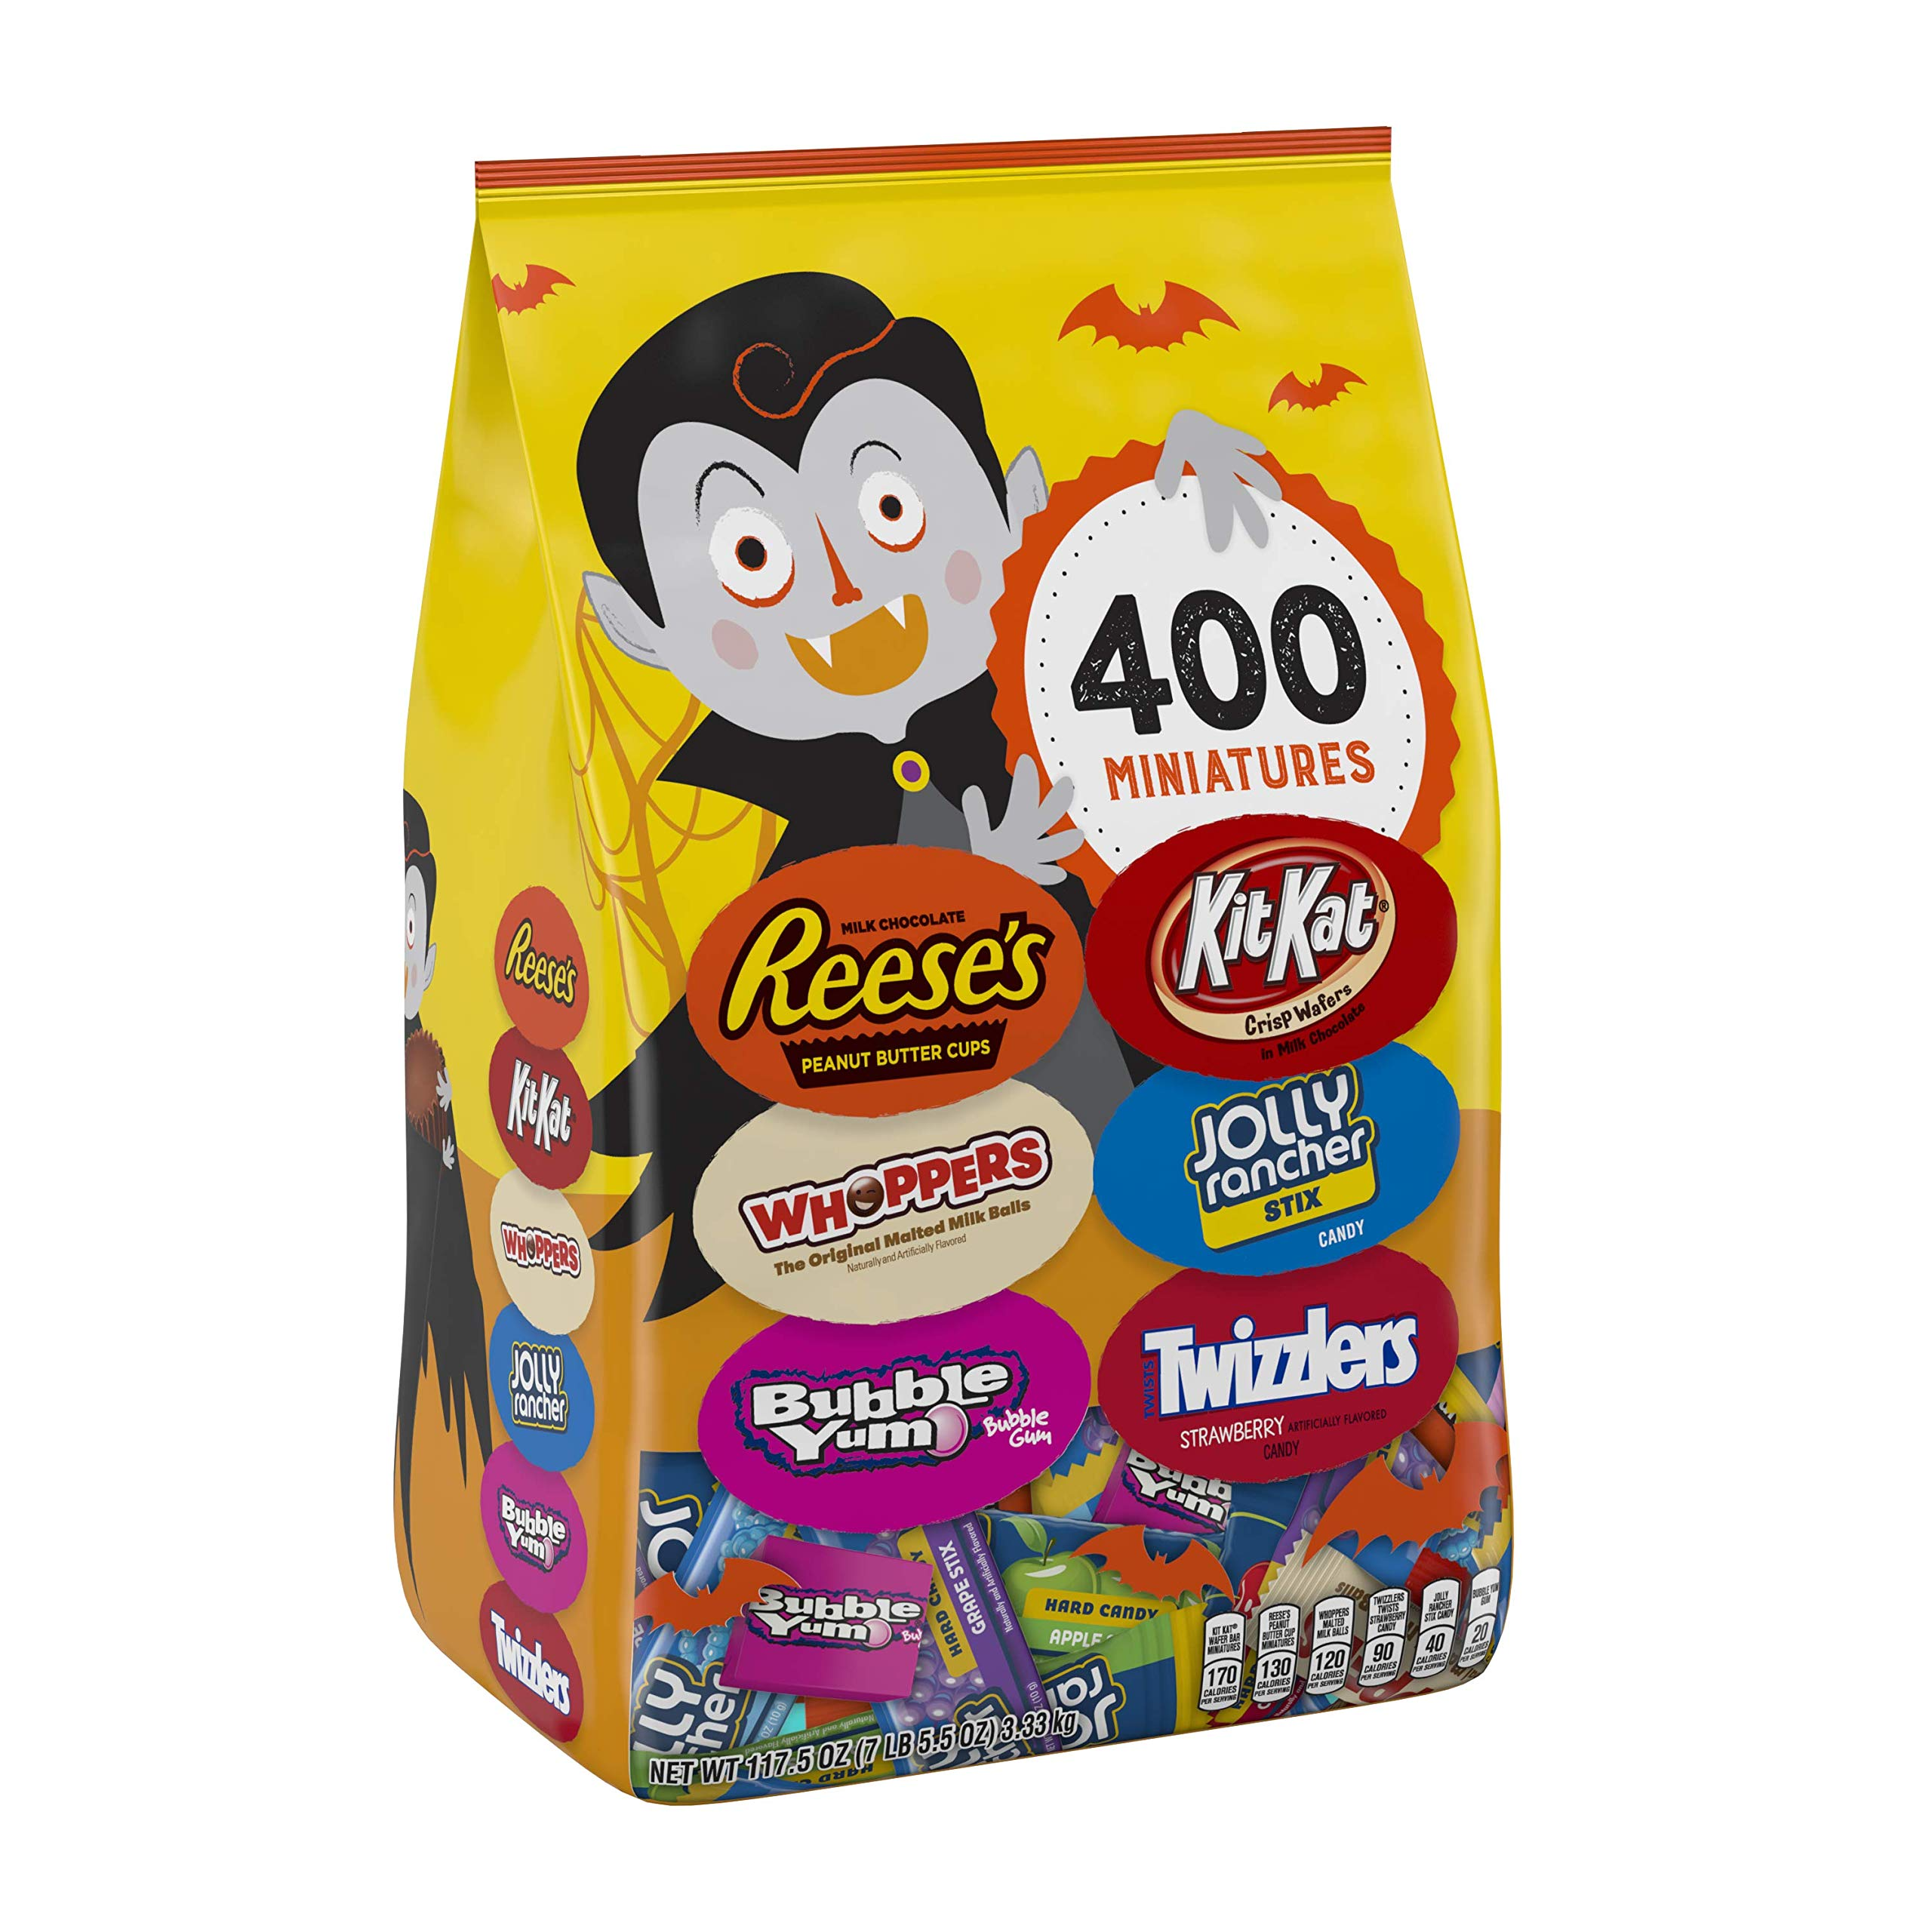 HERSHEY'S Bulk Halloween Candy Variety Mix (REESE'S, KIT KAT, WHOPPERS, BUBBLE YUM, JOLLY RANCHER, TWIZZLERS), 117.5 oz by HERSHEY'S